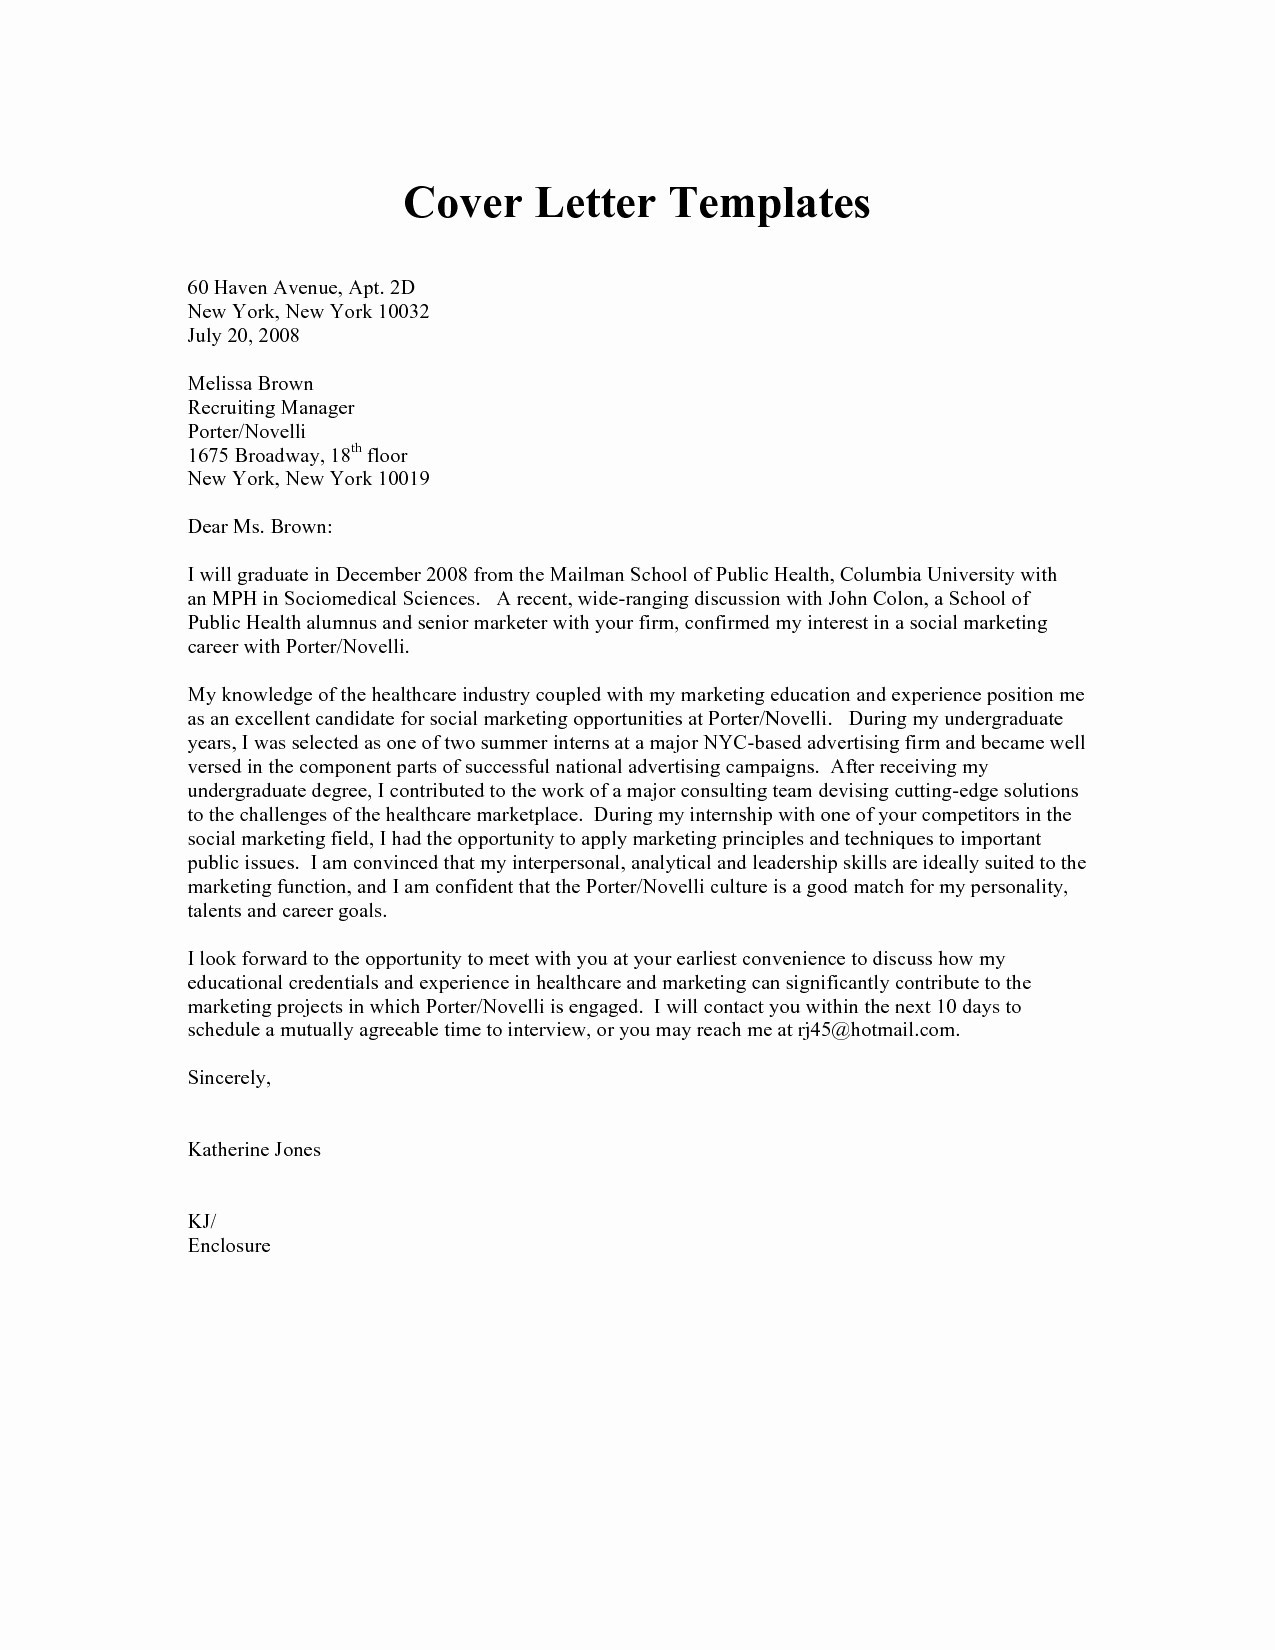 Confirmation Letter Template - Cover Letter Sample for Summer Job Save Confirmation Job Letter Save